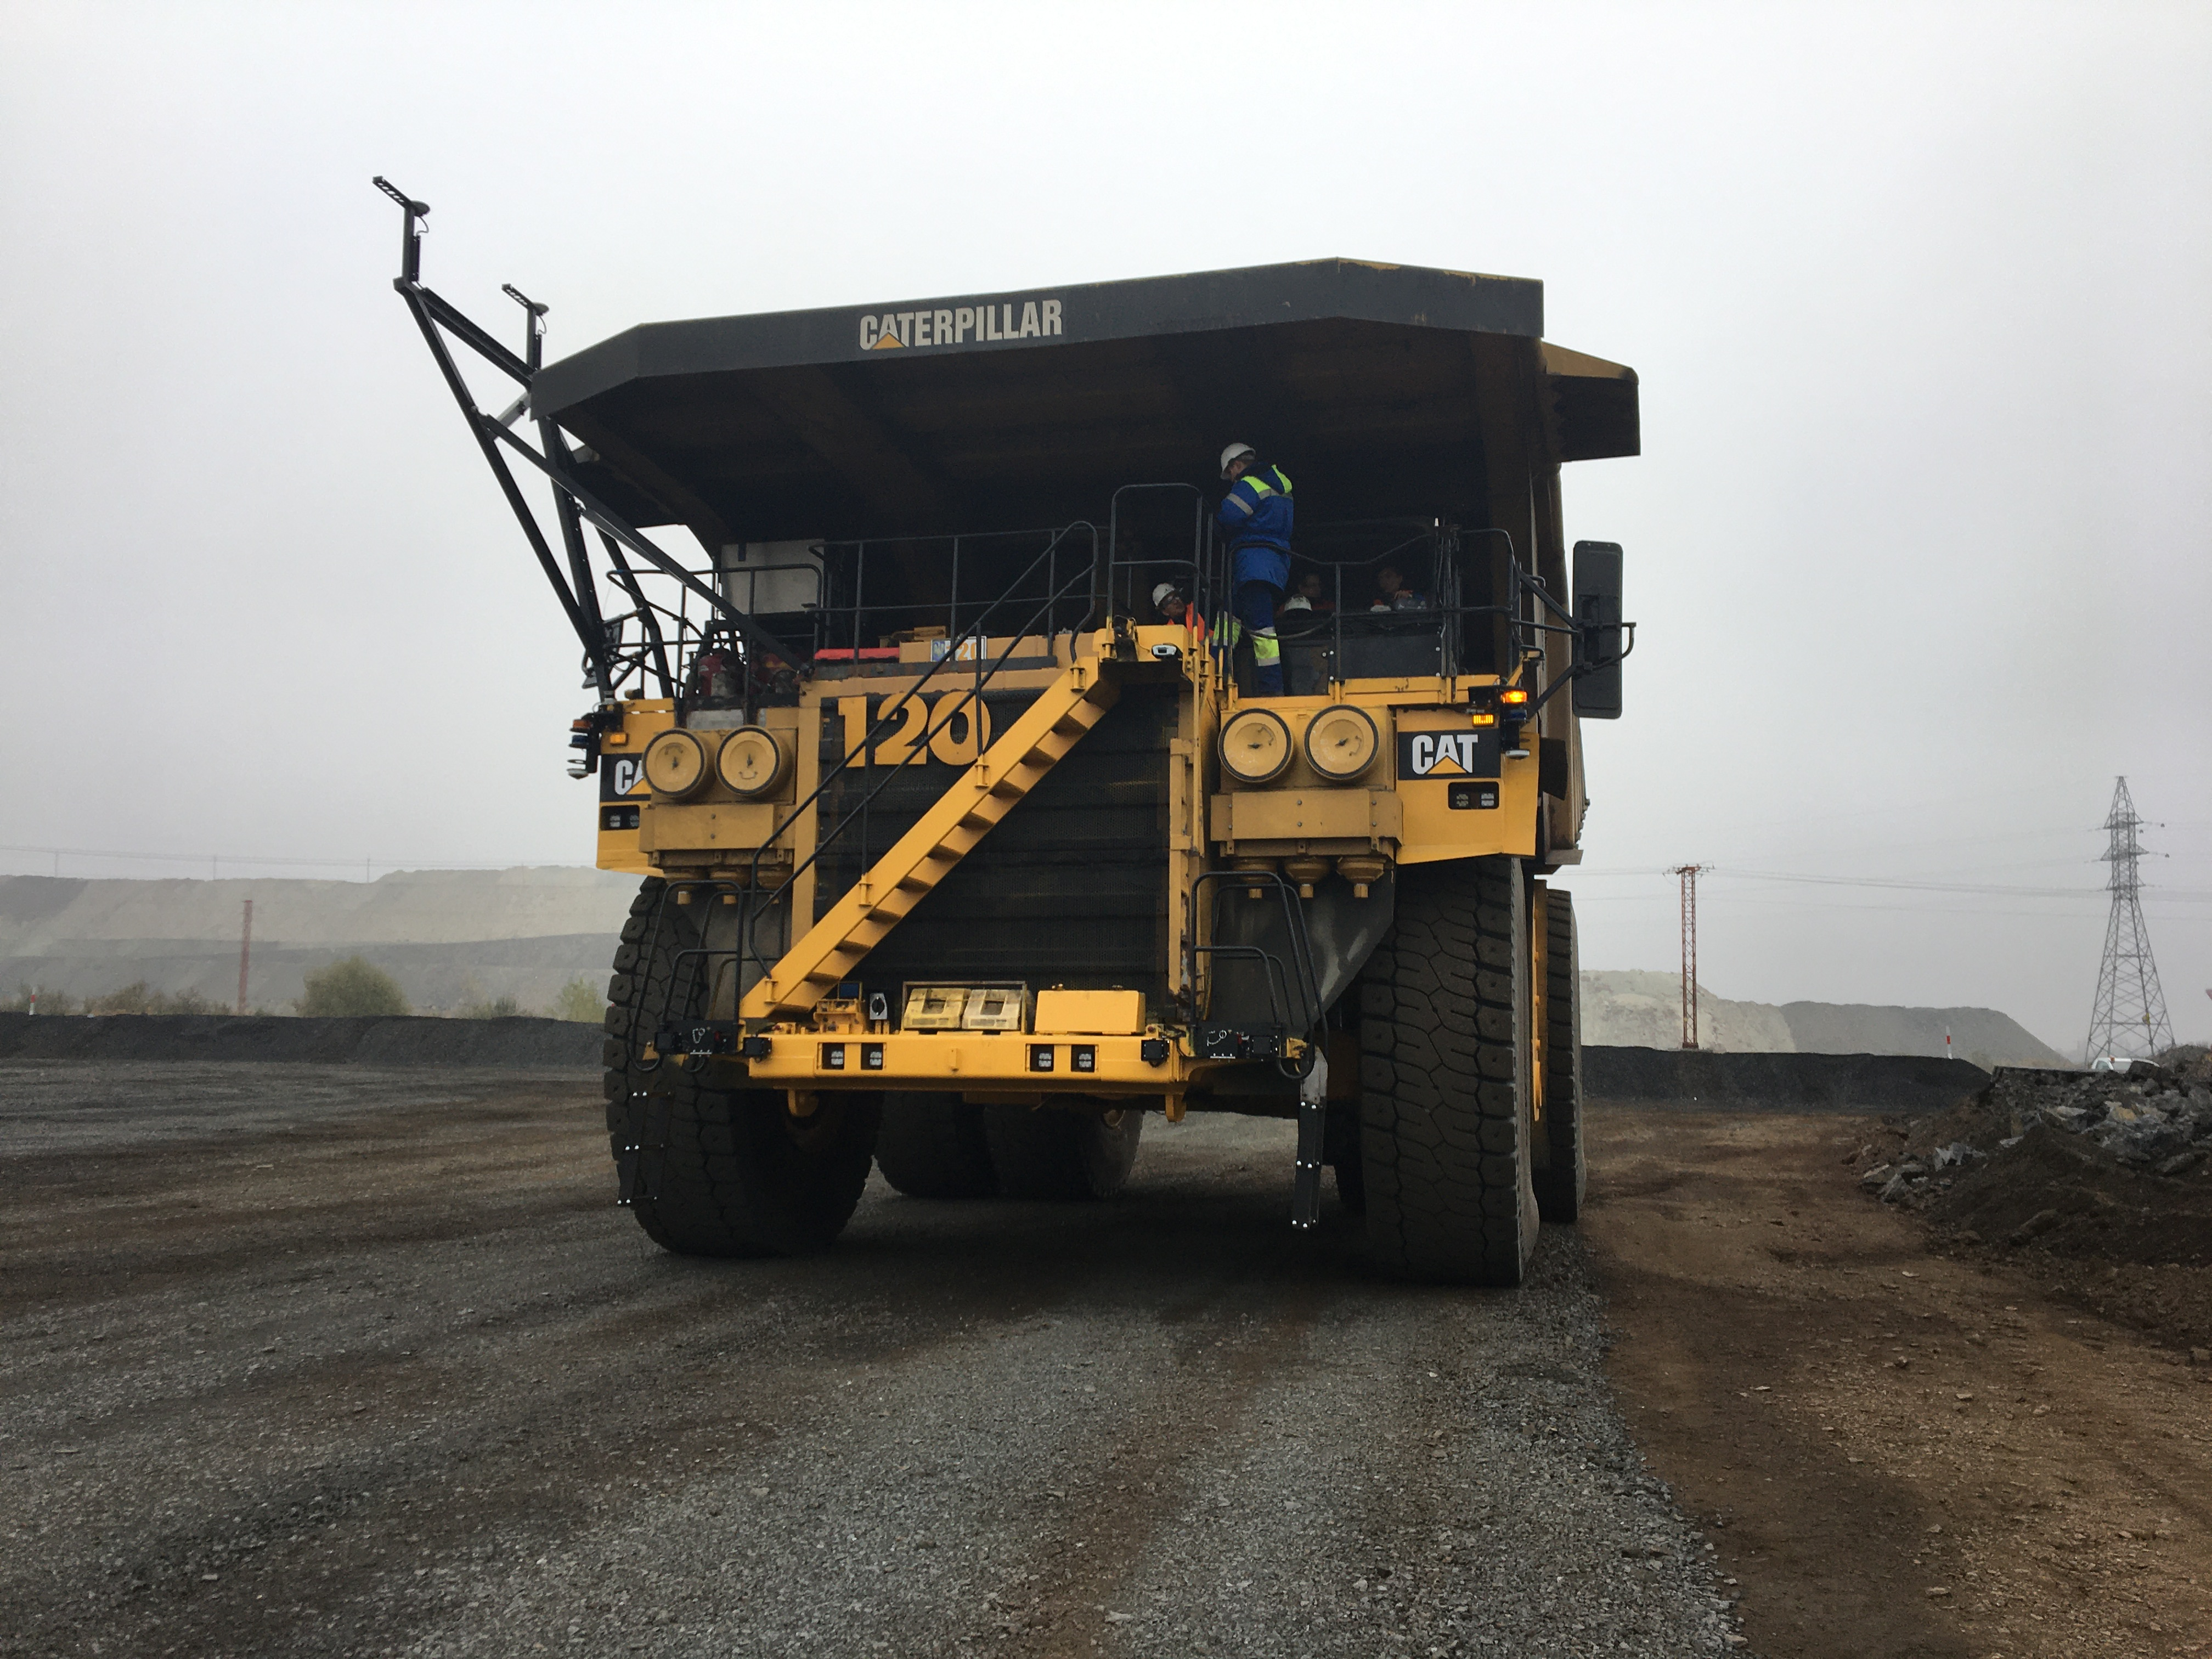 Ferrexpo haul truck converted to full autonomy by ASI Mining